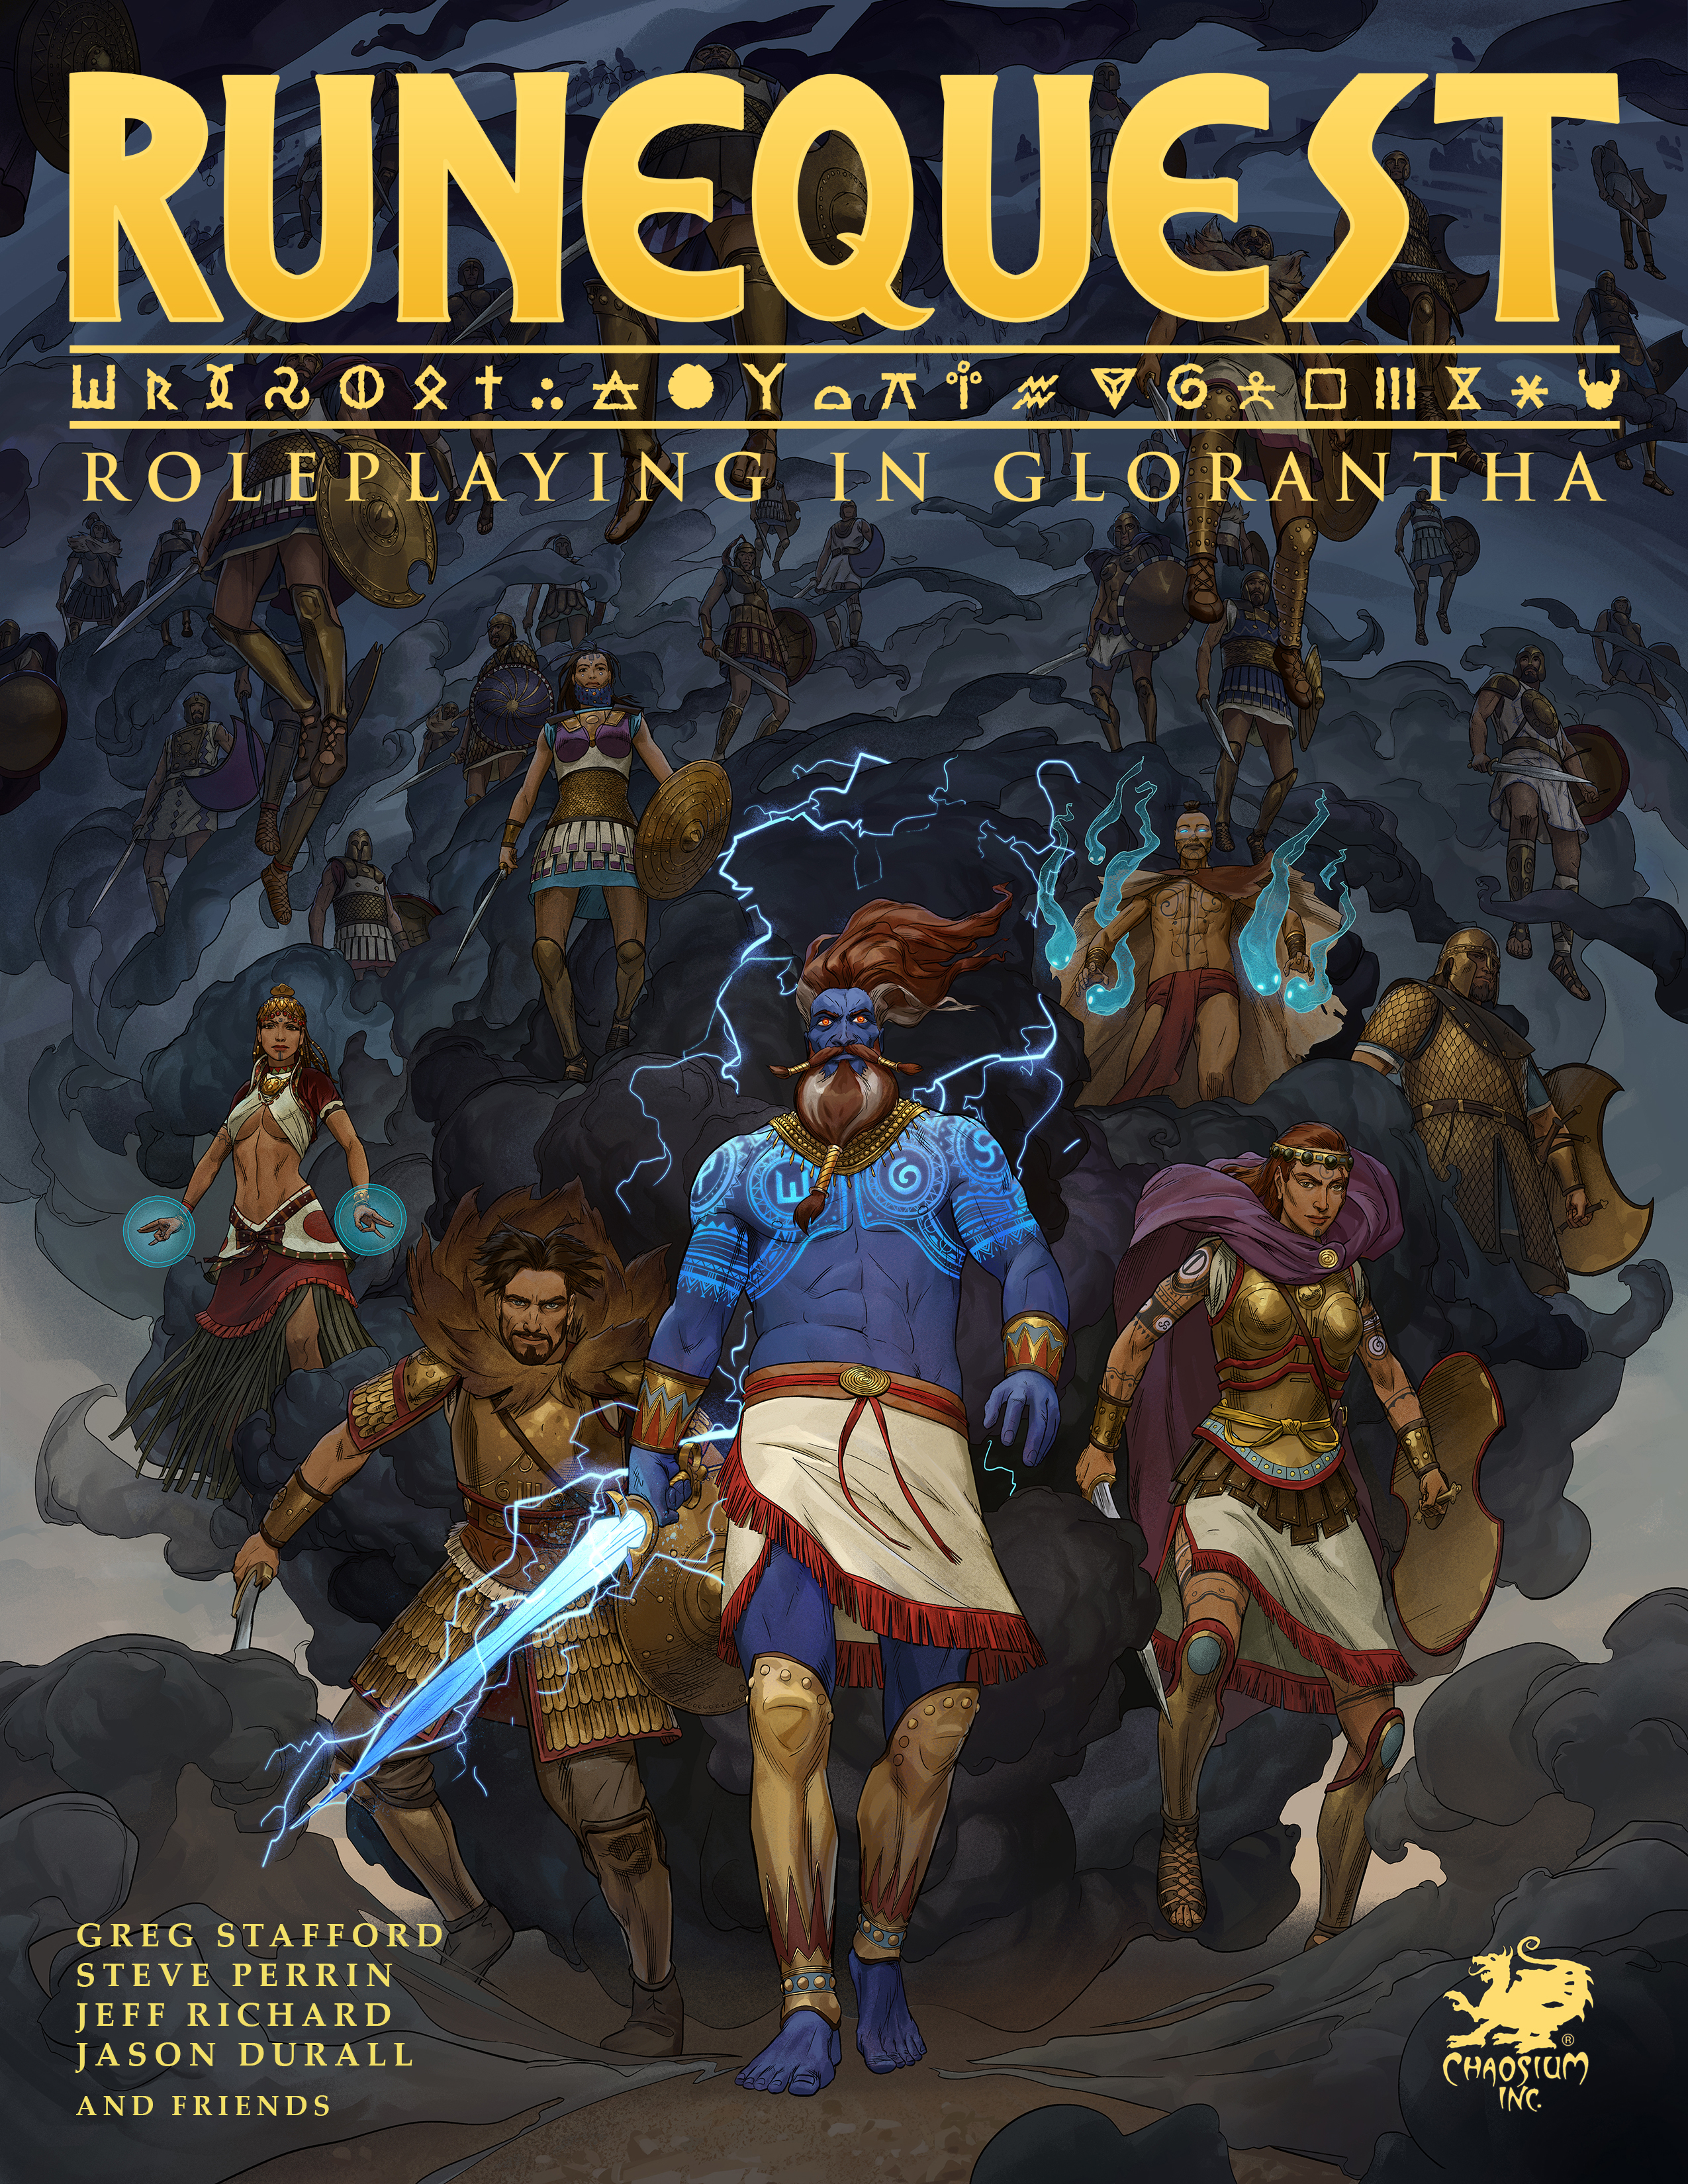 Runequest roleplaying in glorantha pdf chaosium inc fandeluxe Choice Image